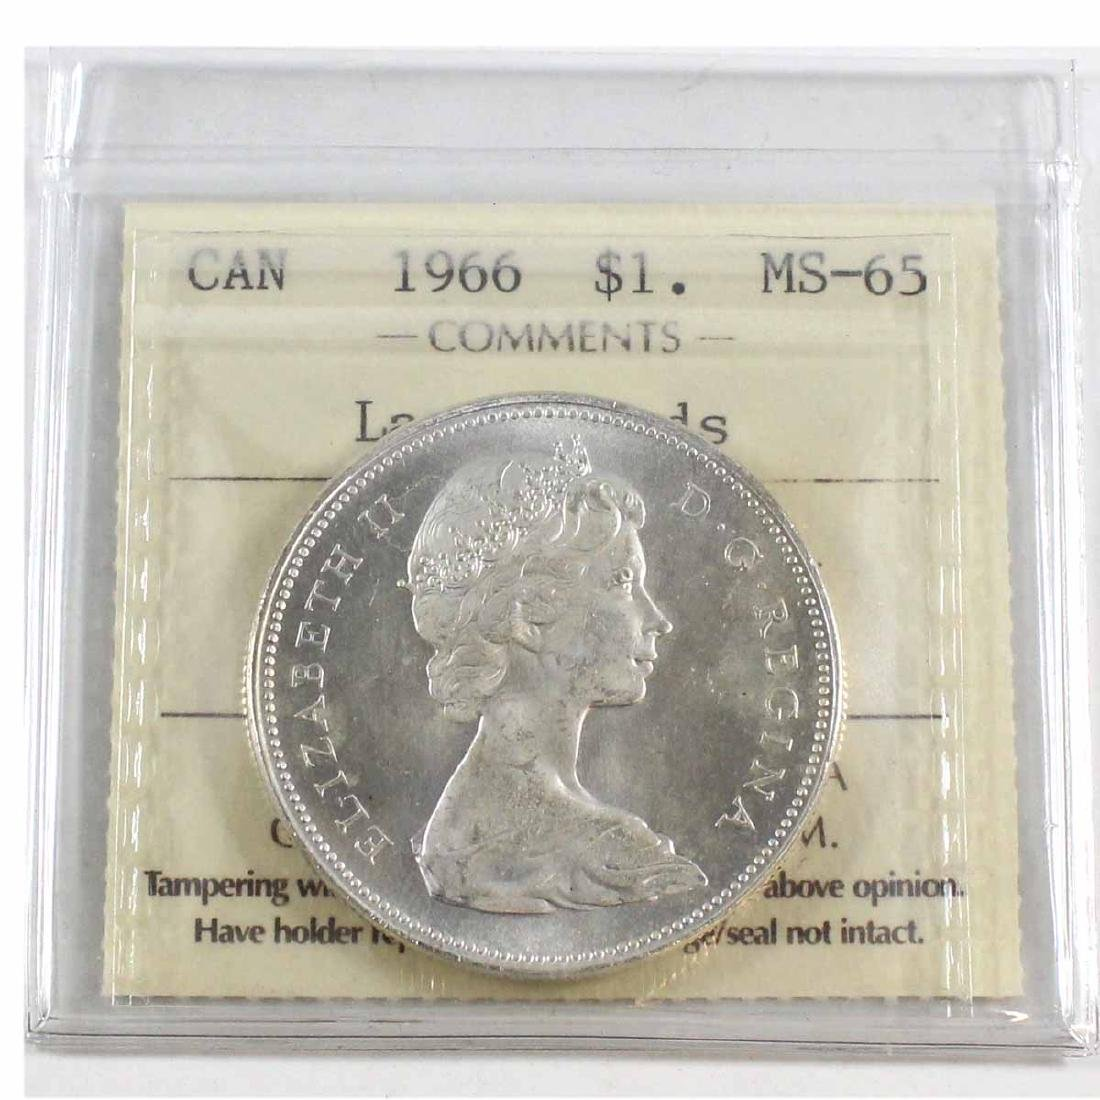 1966 Canada Silver $1 Large Beads ICCS Certified MS-65.